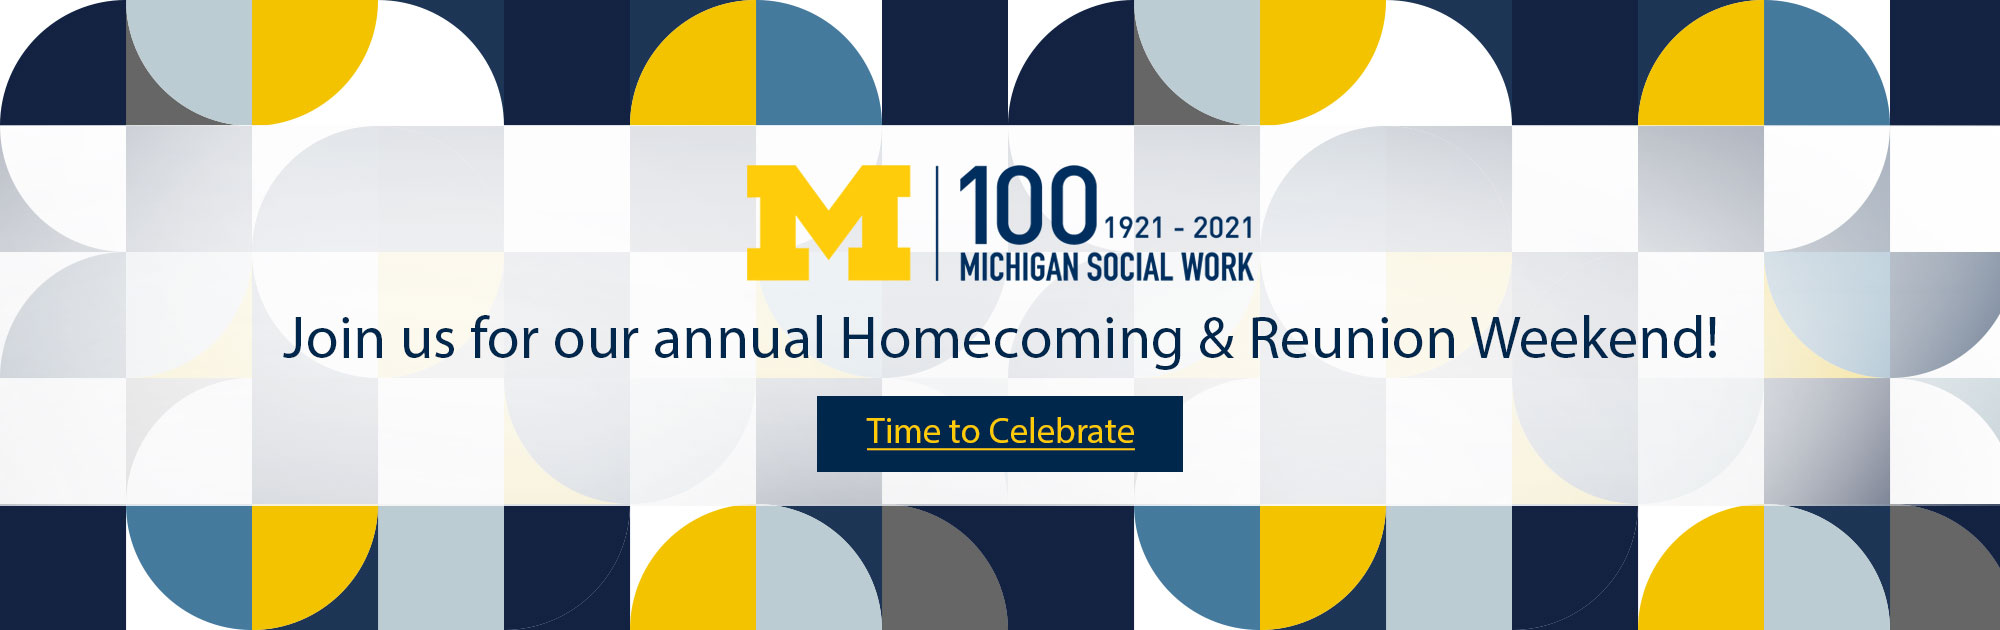 Join us for our annual Homecoming & Reunion Weekend!